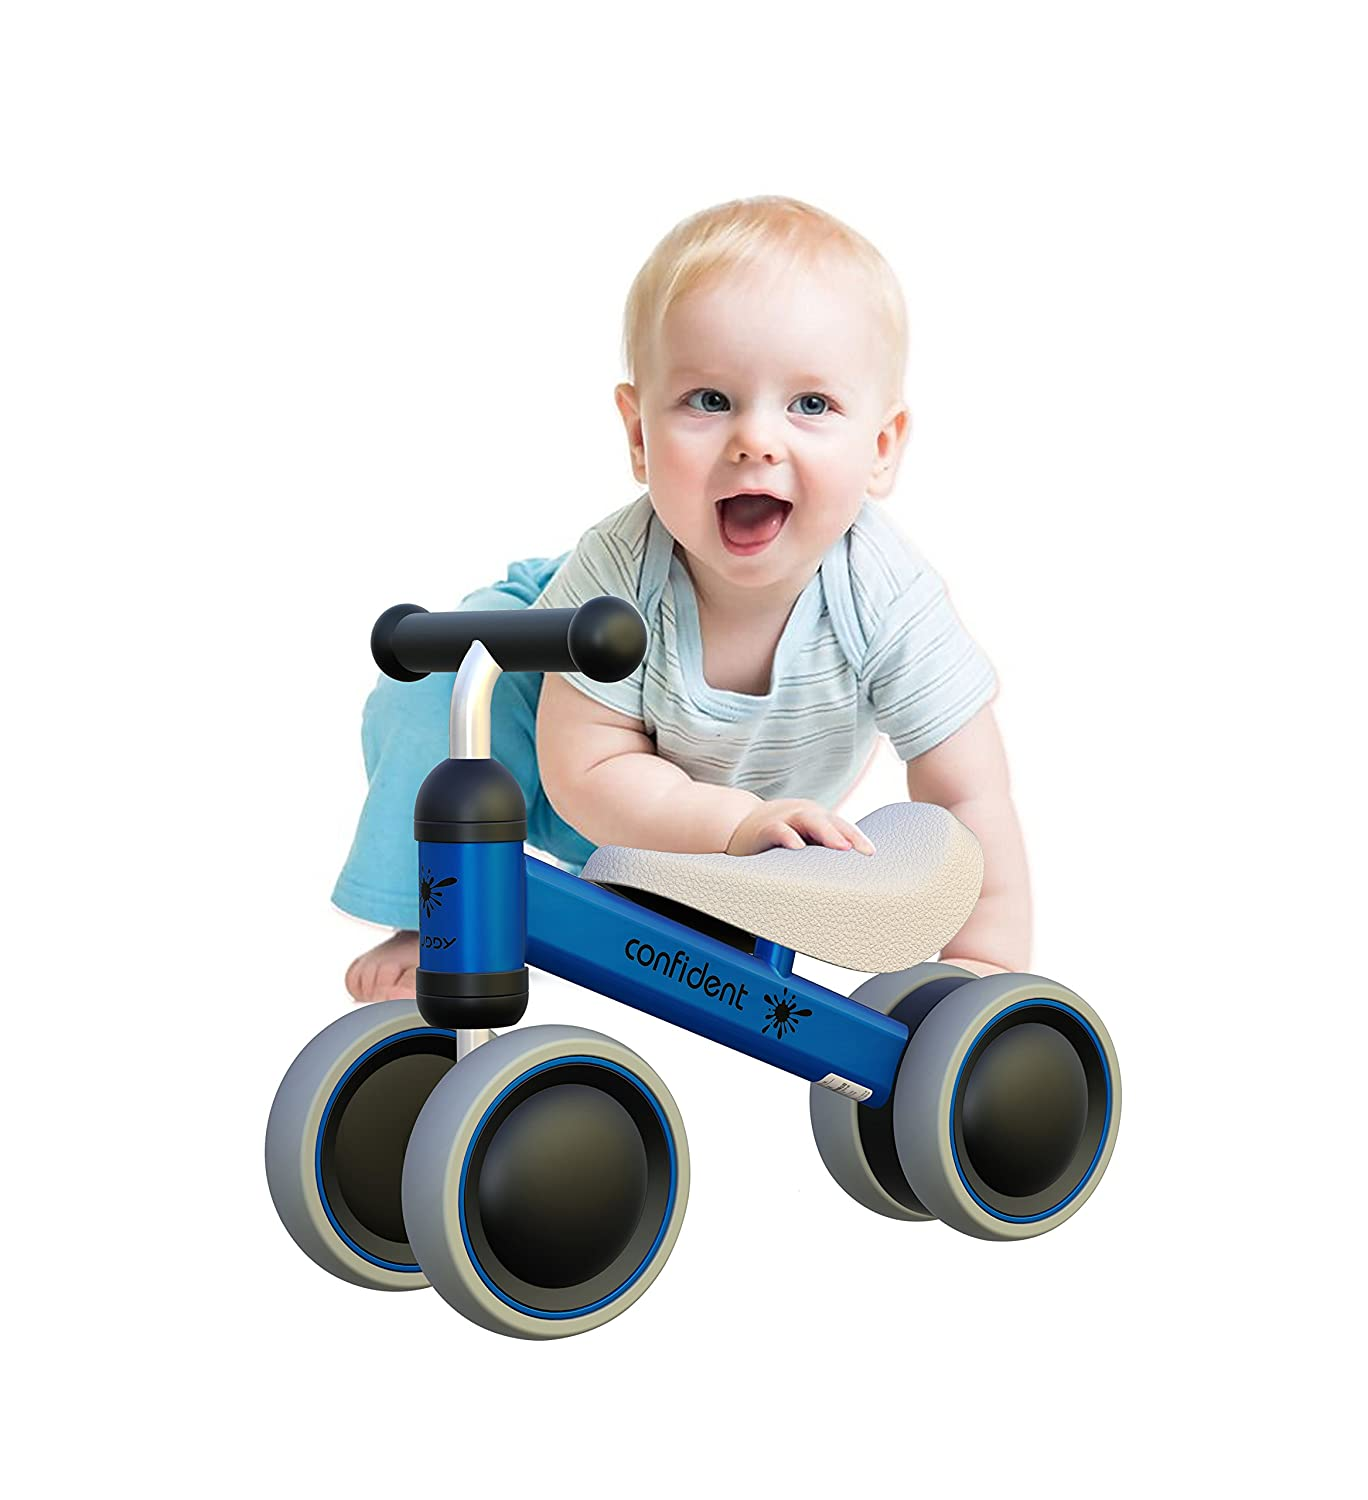 YGJT Baby Balance Bikes Bicycle Baby Walker Toys Rides for 1 Year Boys Girls 10 Months-24 Months Baby's First Bike First Birthday Gift Yellow Duck China